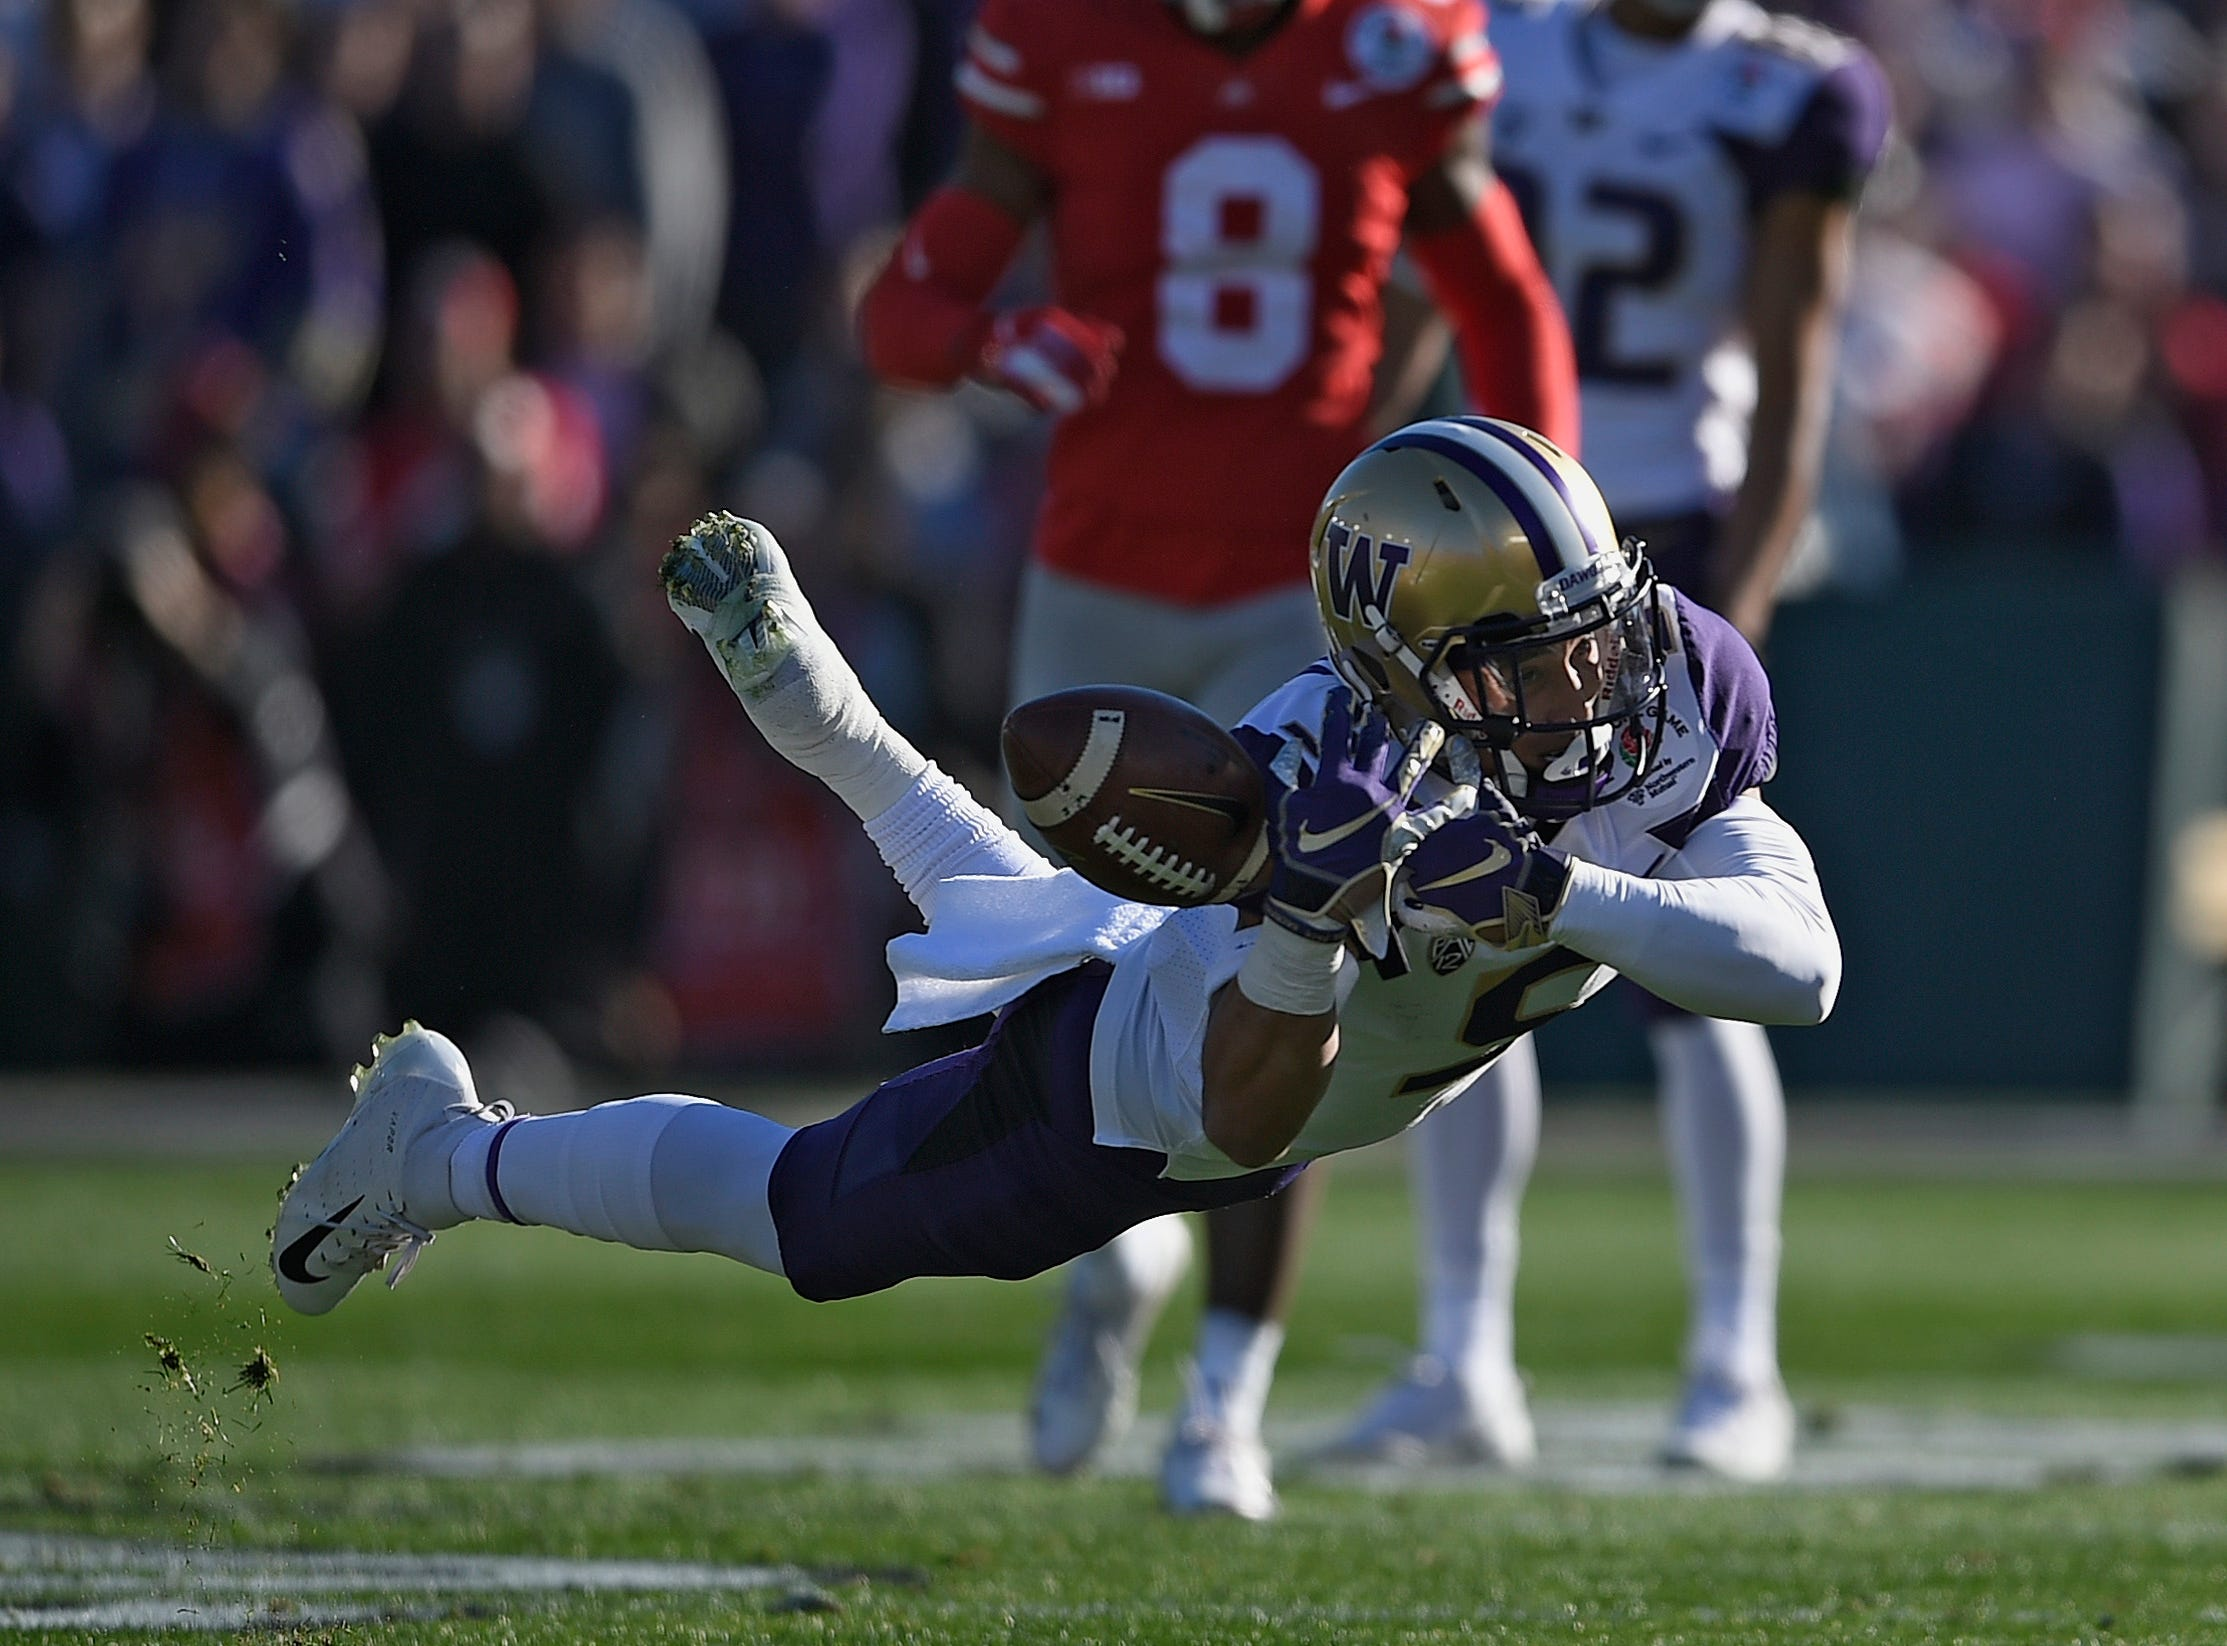 Washington Huskies wide receiver Andre Baccellia (5) drops a pass in the first quarter against the Ohio State Buckeyes in the Rose Bowl.